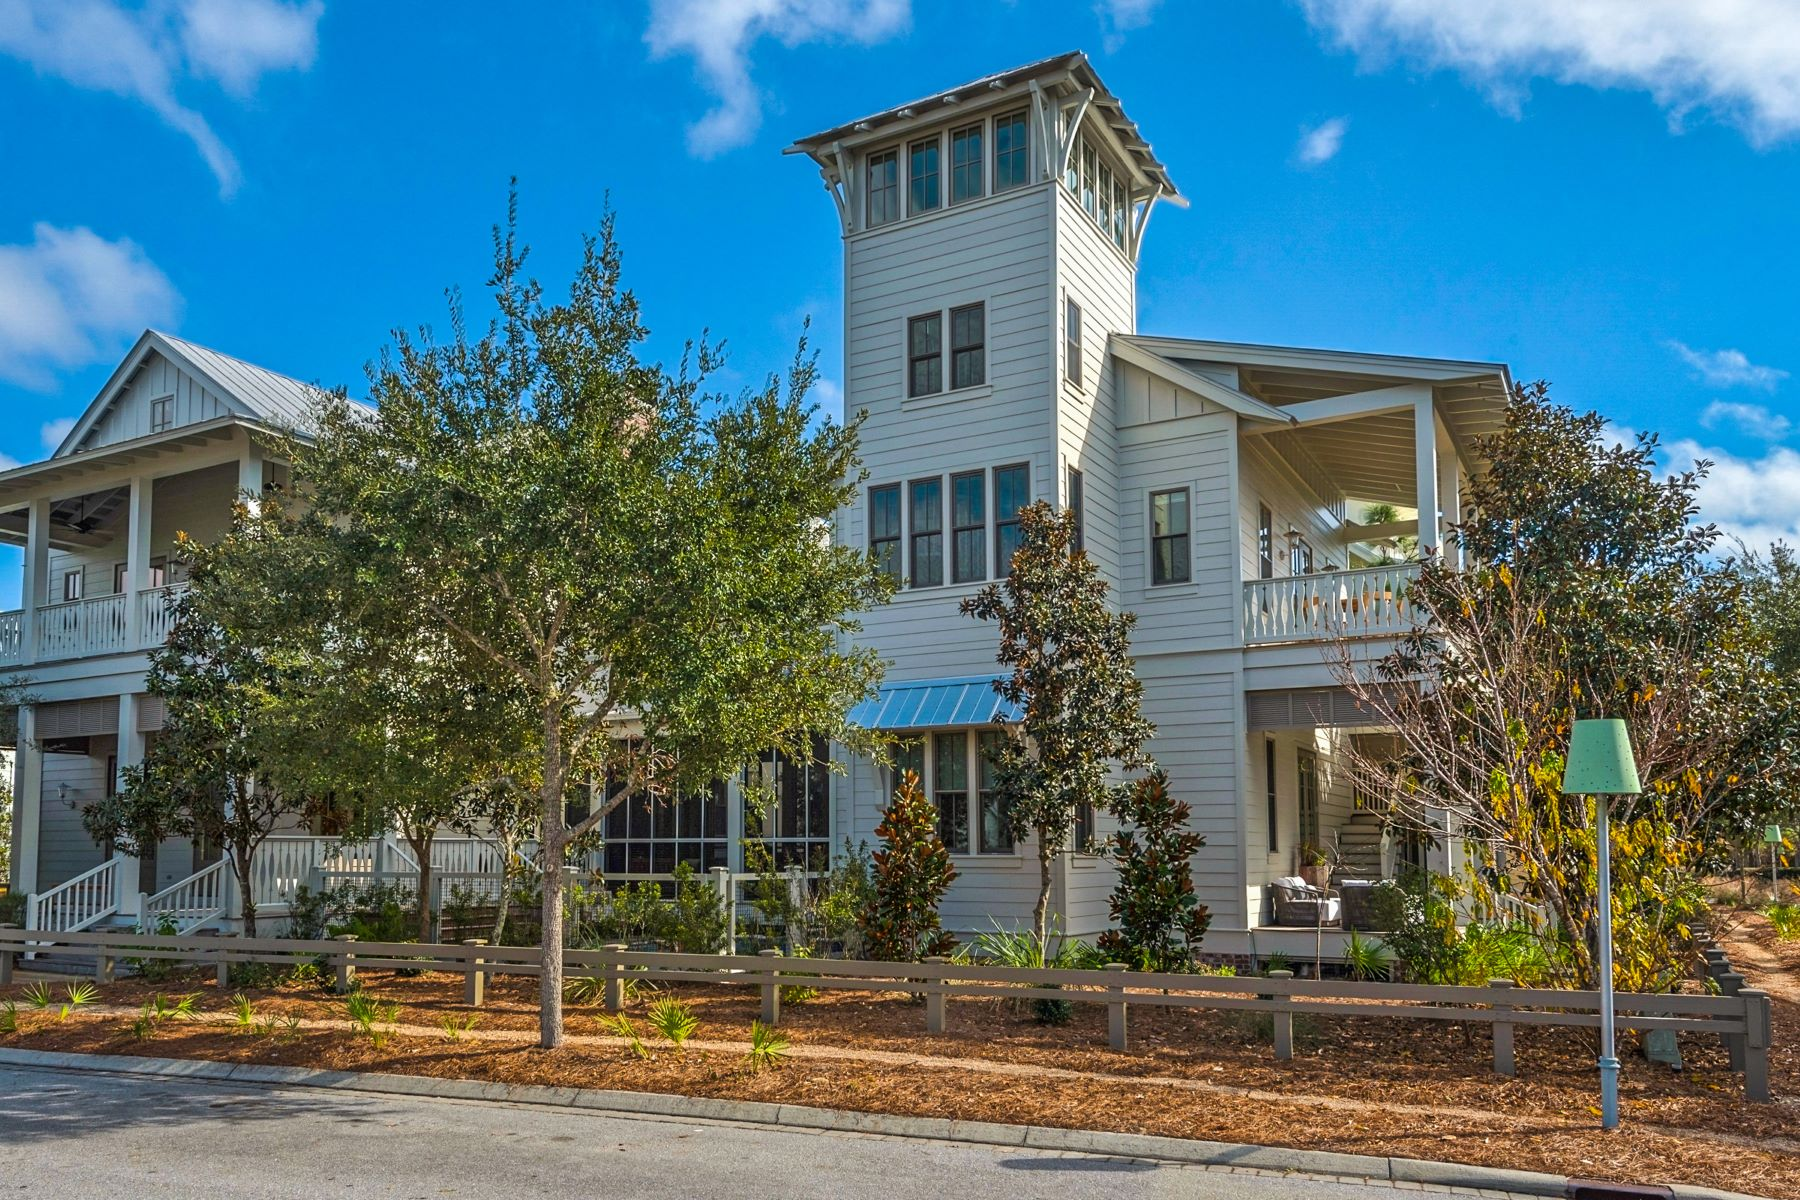 Single Family Homes for Sale at WaterColor Home with Carriage House and Pool on Corner Lot 128 Wiregrass Way Santa Rosa Beach, Florida 32459 United States